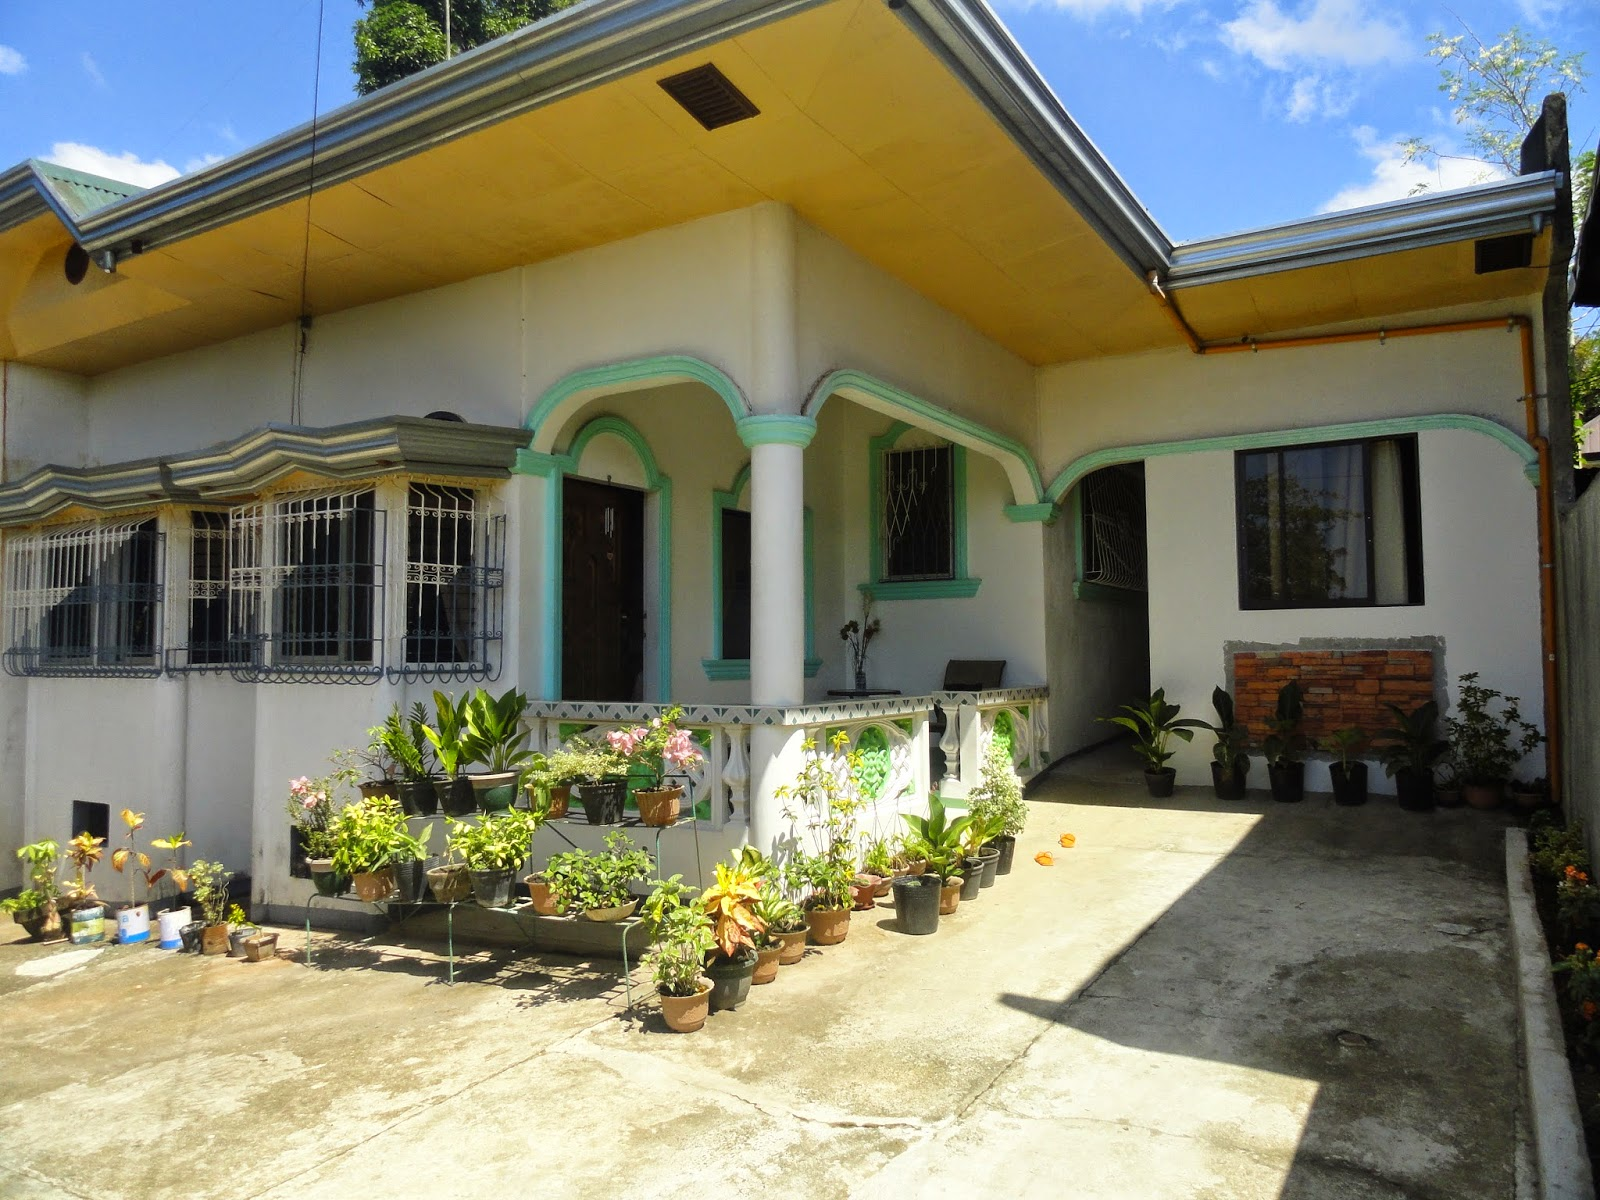 Zamboanga del Sur Properties: FOR SALE/RENT: HOUSE AND LOT